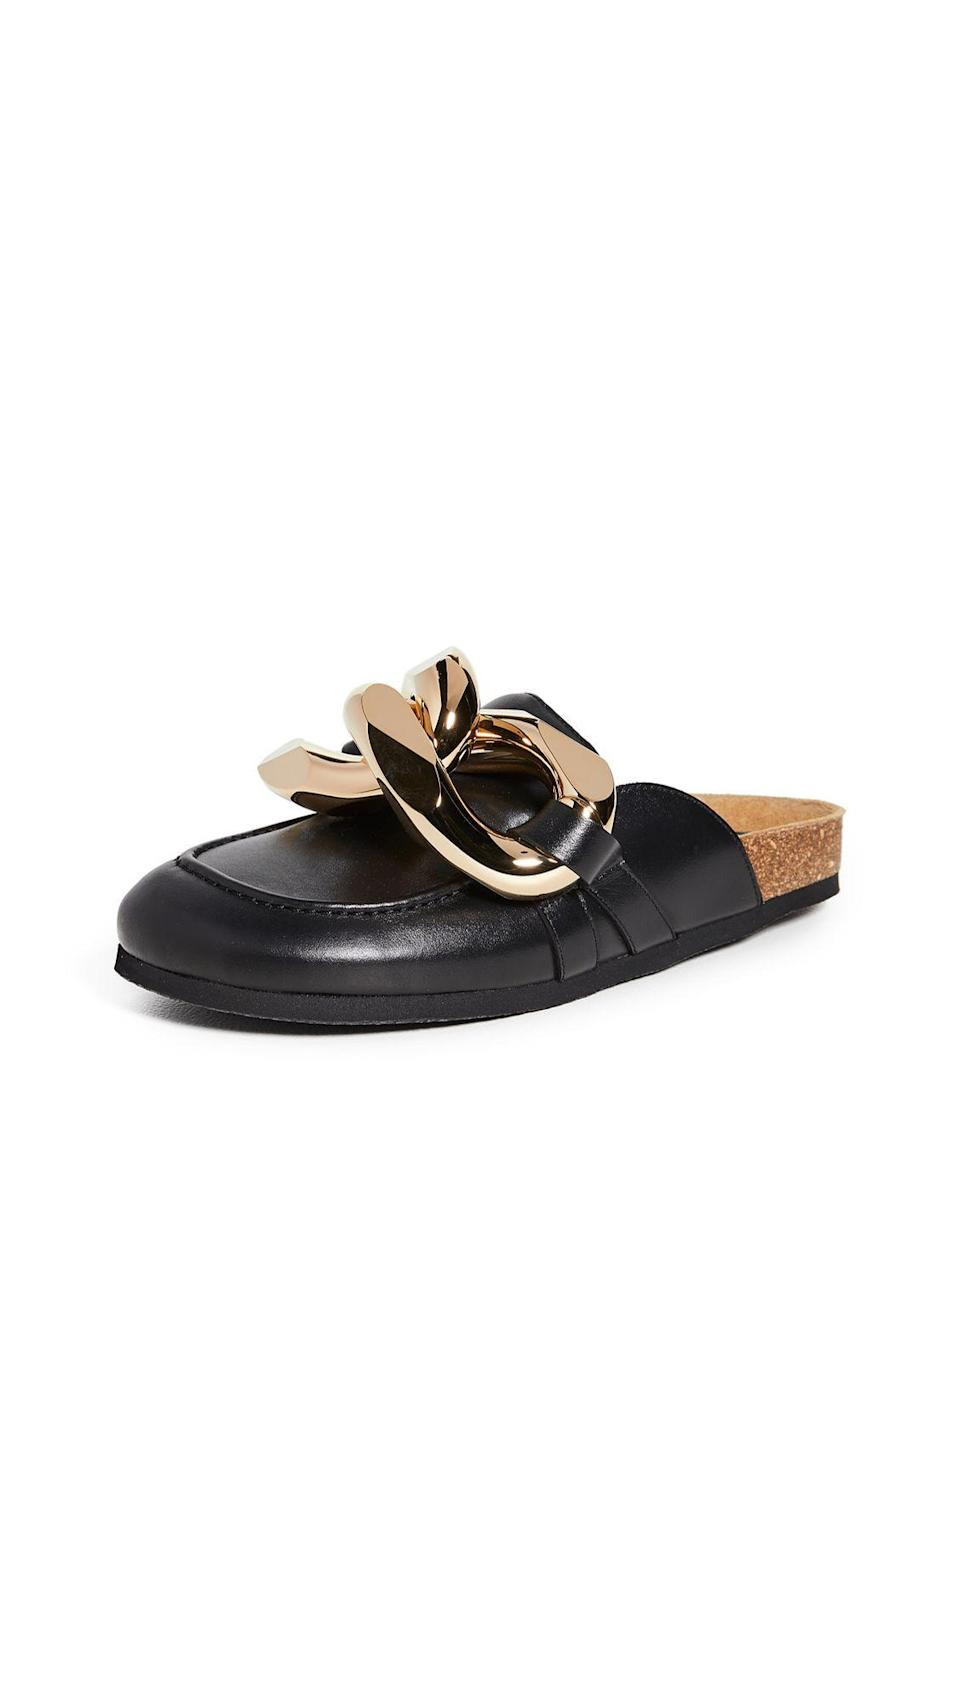 """<p><strong>JW Anderson</strong></p><p>shopbop.com</p><p><strong>$640.00</strong></p><p><a href=""""https://go.redirectingat.com?id=74968X1596630&url=https%3A%2F%2Fwww.shopbop.com%2Fchain-loafer-jw-anderson%2Fvp%2Fv%3D1%2F1561106422.htm&sref=https%3A%2F%2Fwww.marieclaire.com%2Ffashion%2Fg27205502%2Fcomfortable-walking-sandals-women%2F"""" rel=""""nofollow noopener"""" target=""""_blank"""" data-ylk=""""slk:SHOP IT"""" class=""""link rapid-noclick-resp"""">SHOP IT</a></p><p>When you want to look polished and sophisticated, slip into these JW Anderson loafers. They have a comfortable cork sole and a polished chain across the front that gives them day-to-night appeal.</p>"""